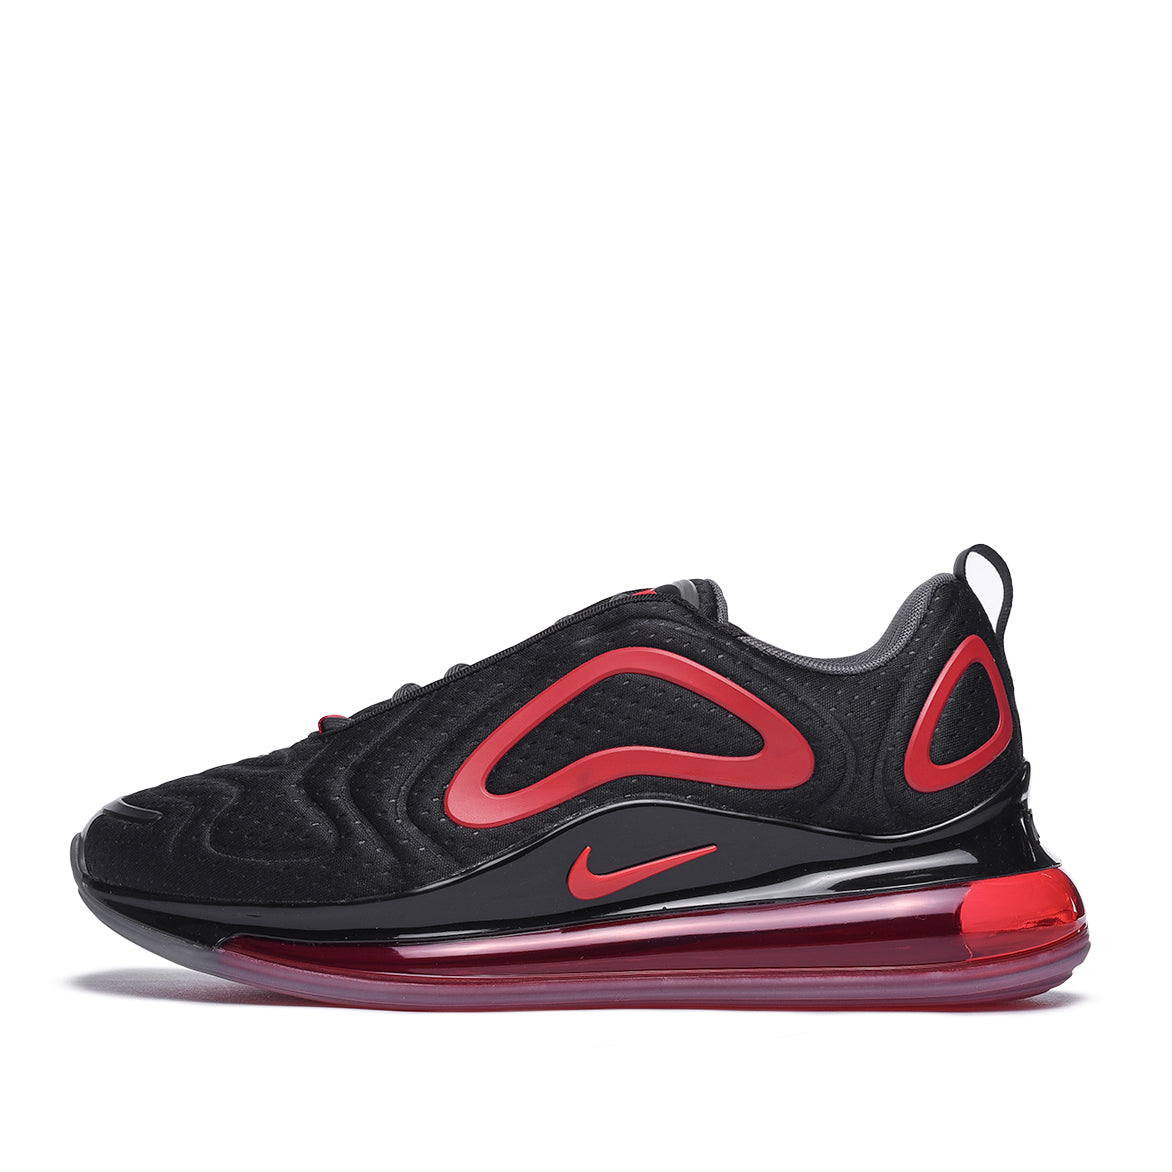 Air Max 720 Mesh Black University Red City Blue